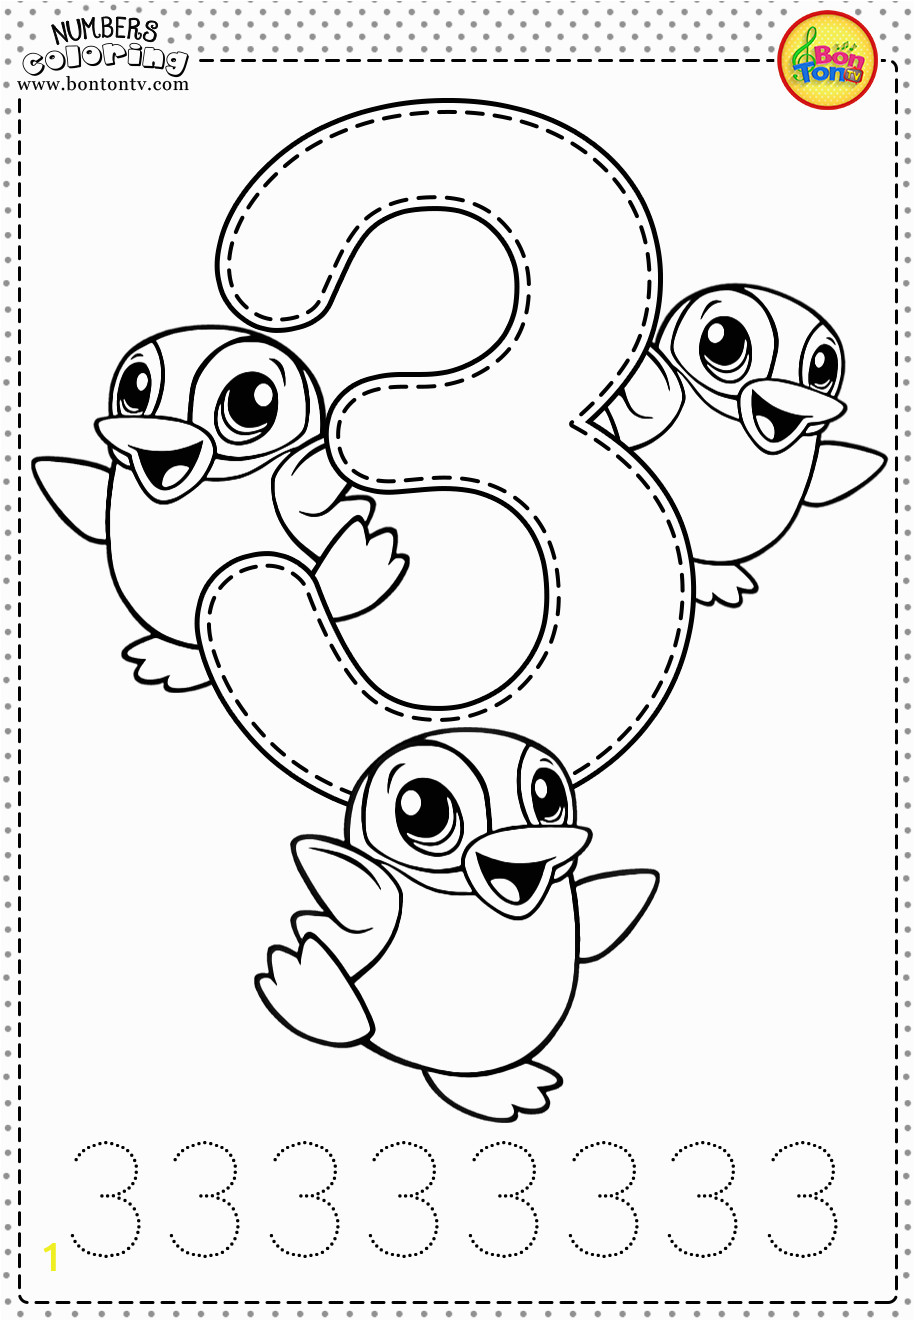 Coloring Pages Printable for Kindergarten Pin Von Melanie Daxner Auf Lisa In 2020 Mit Bildern